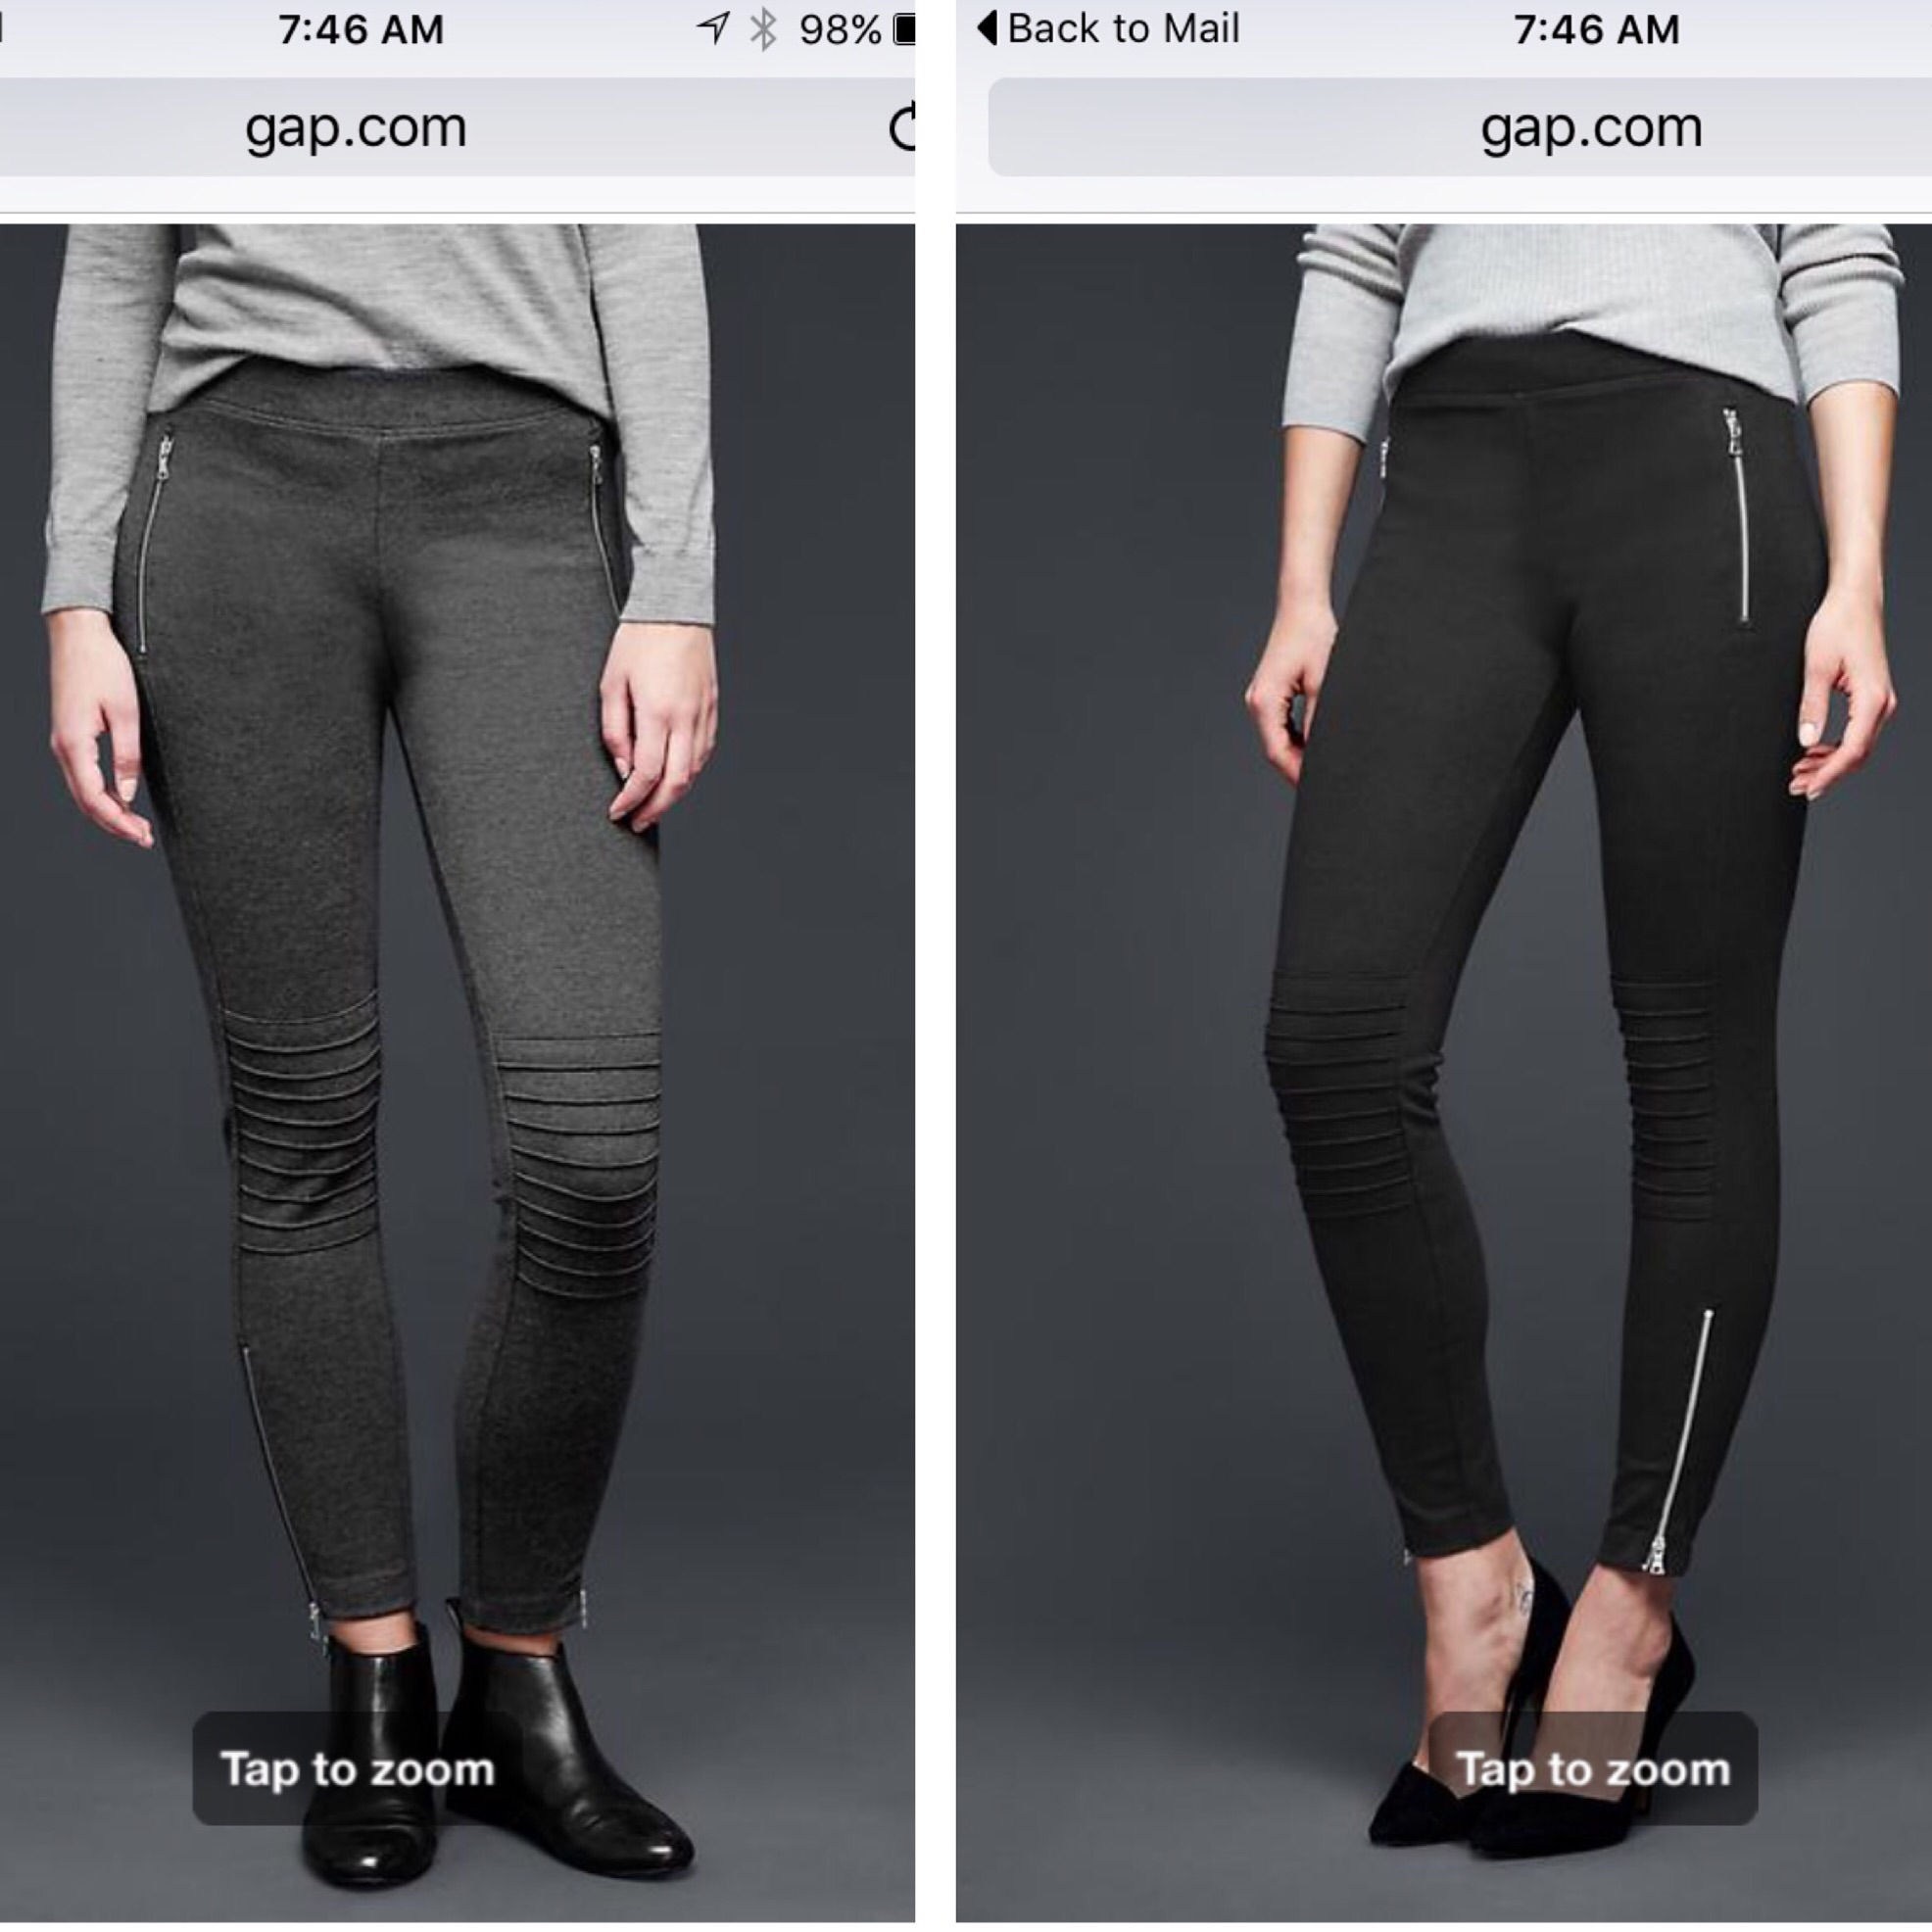 Gap, moto-style ponte knit leggings, $59.95